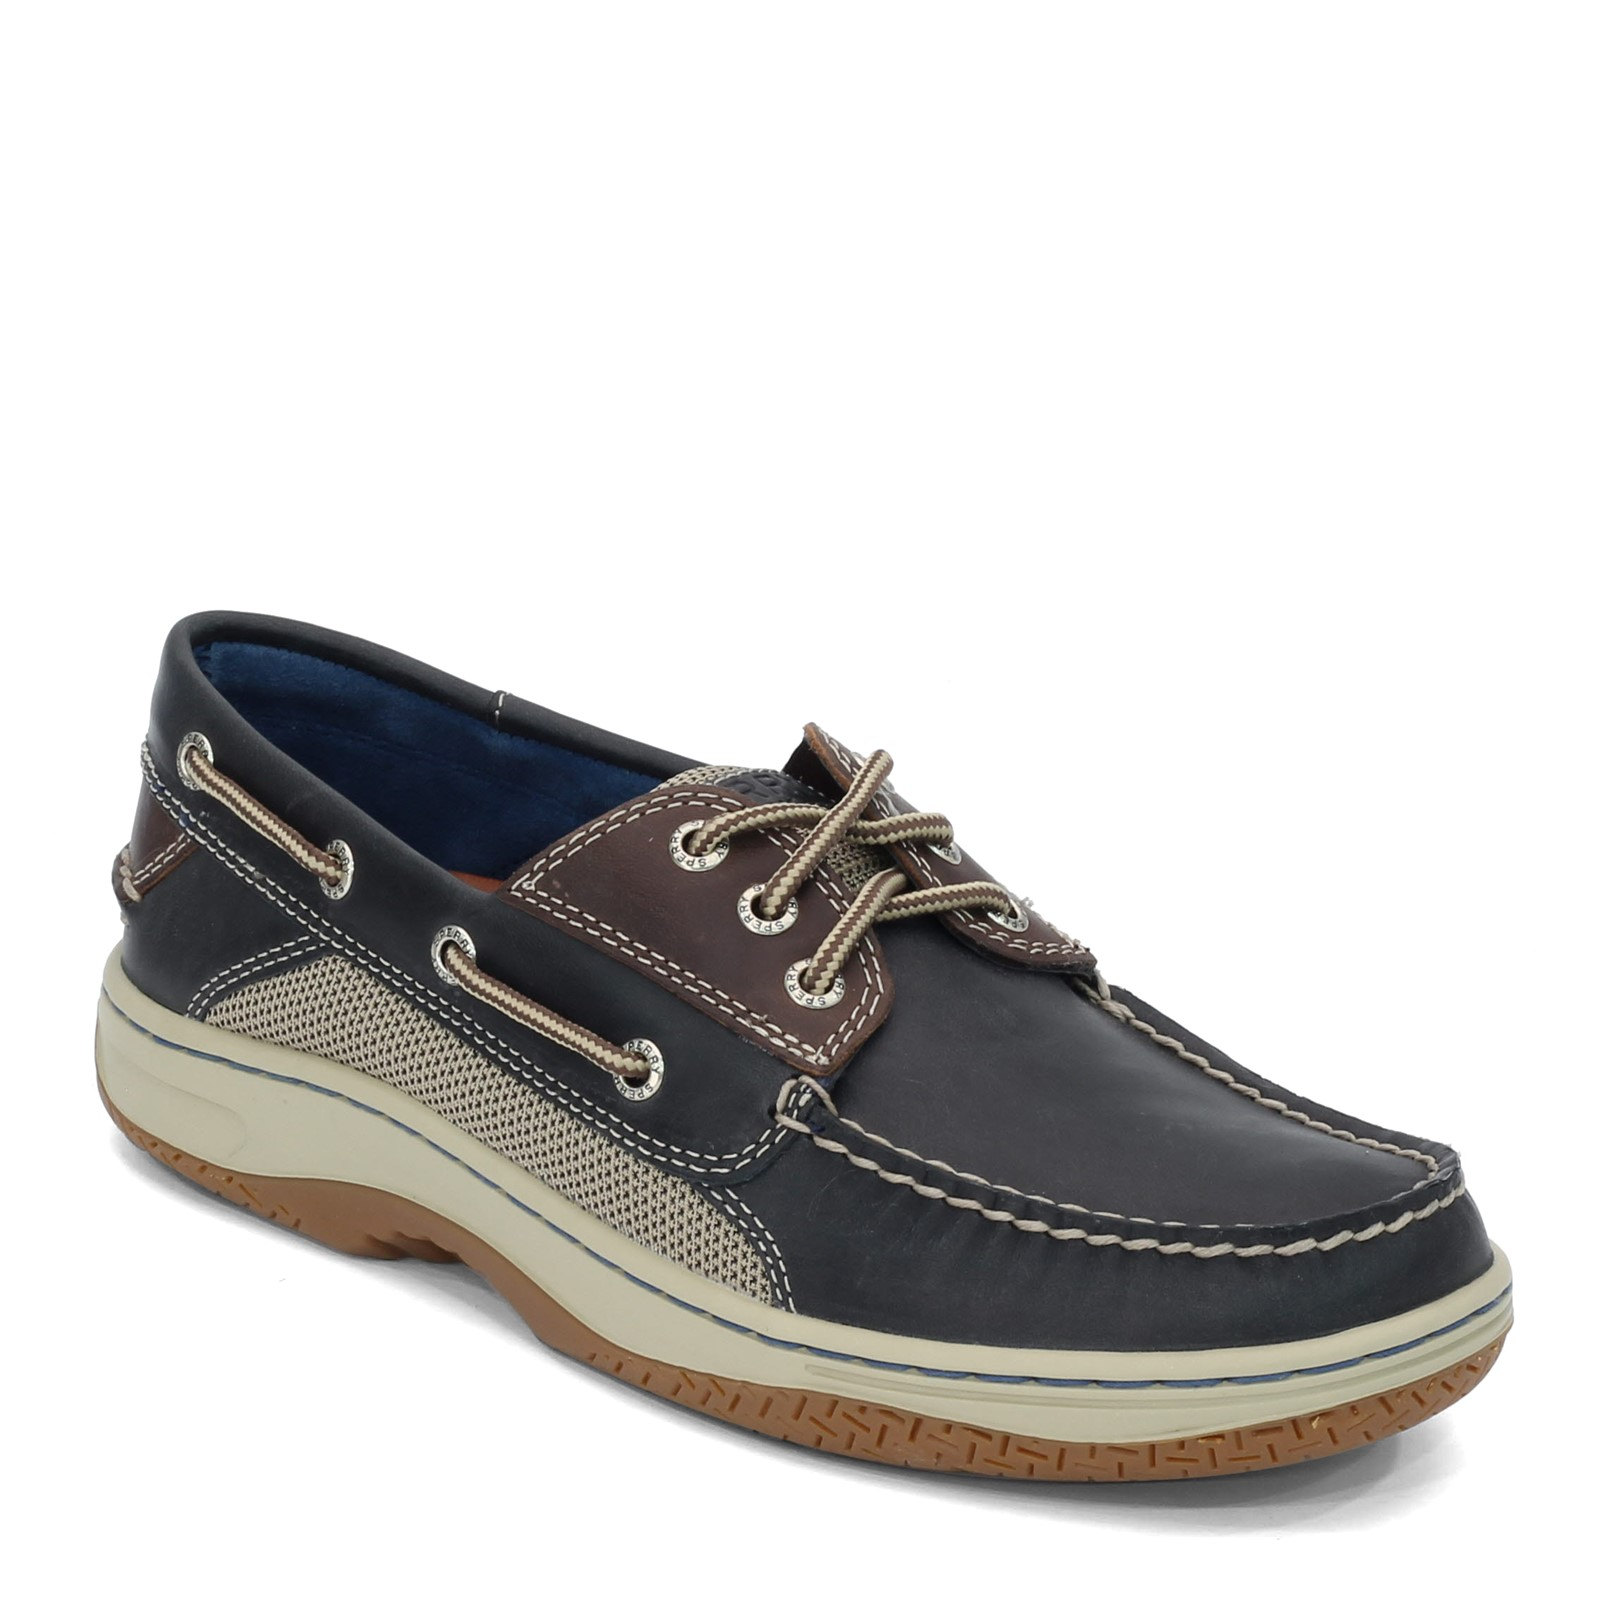 Men's Sperry, Billfish Ultralite 3-Eye Boat Shoe